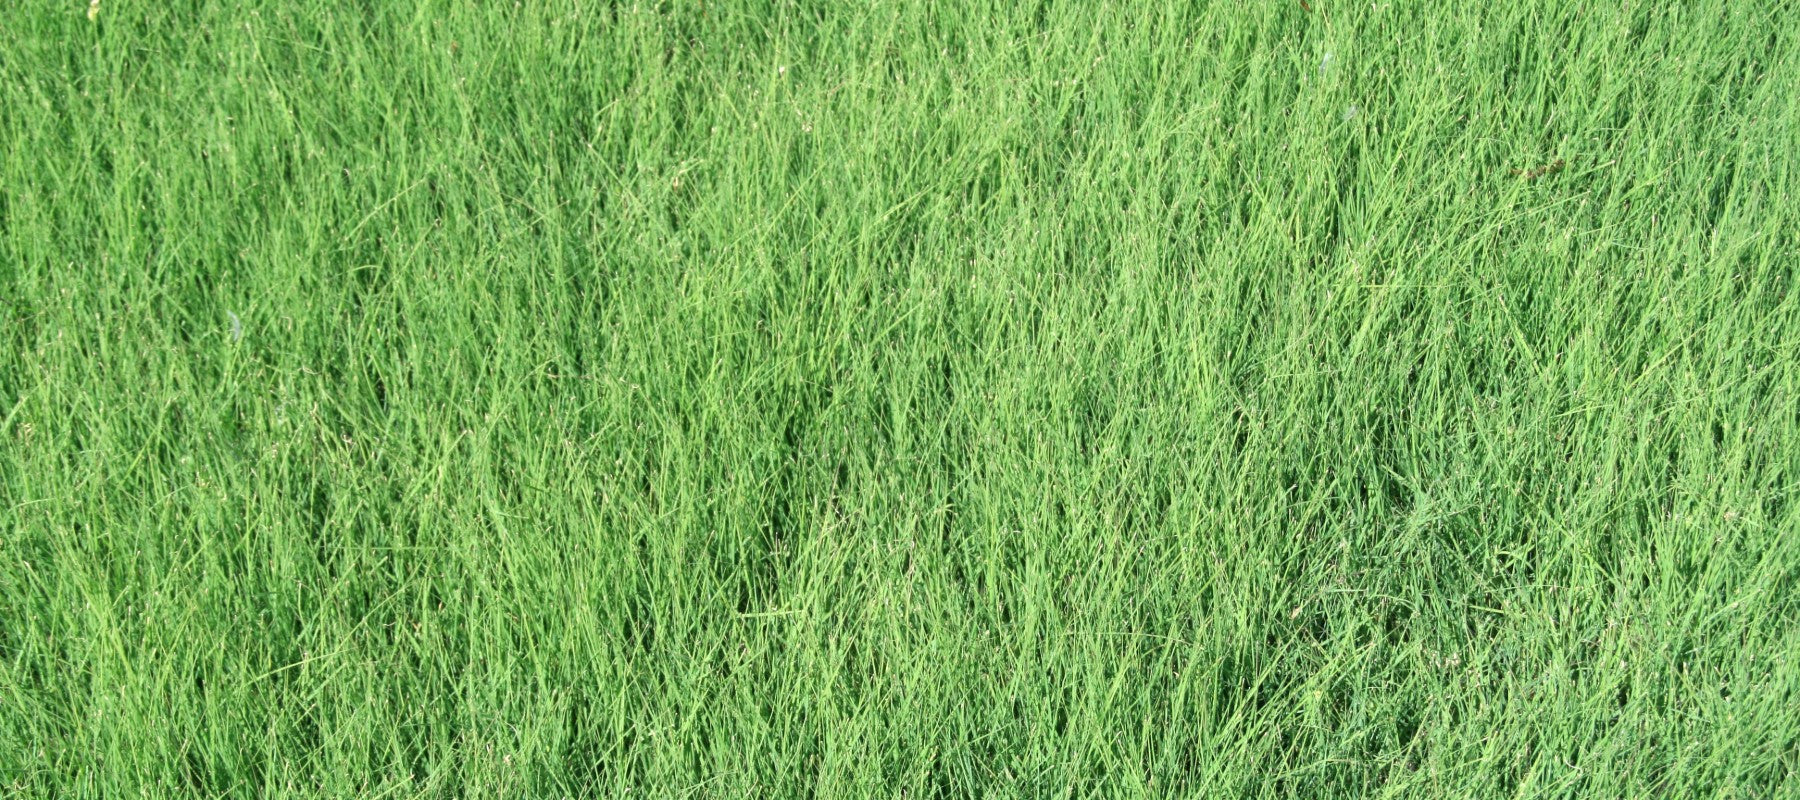 California Lawn Alternatives Drought Tolerant Grass And Groundcovers